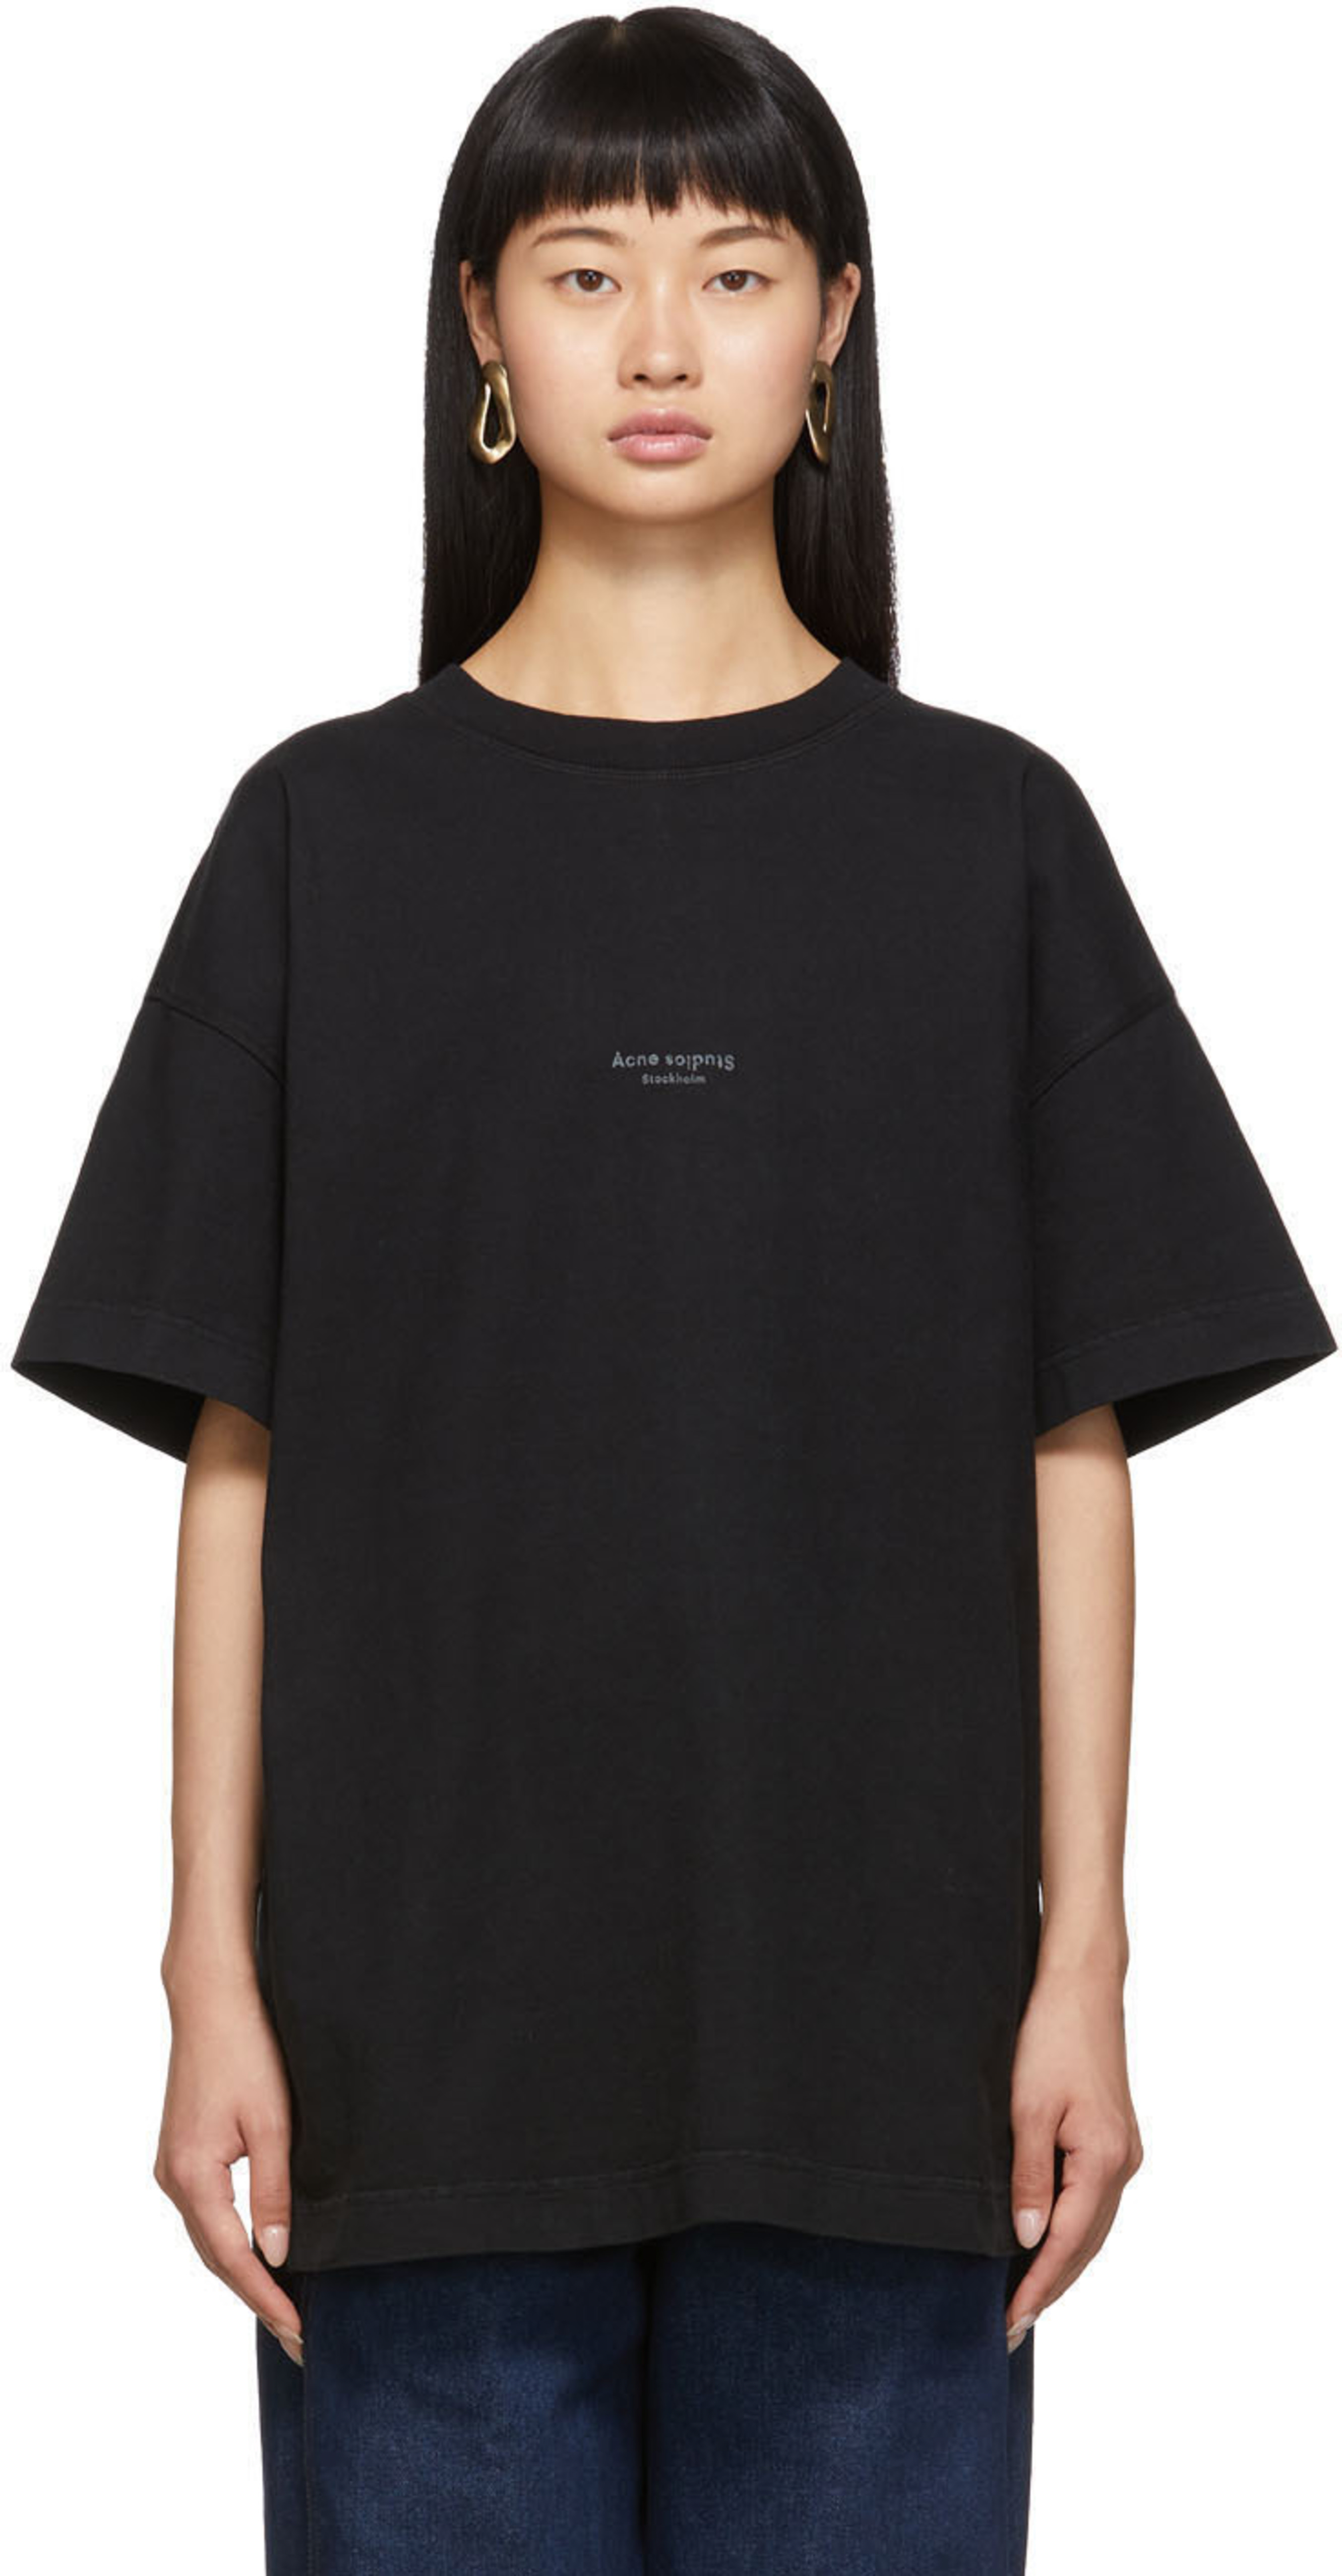 b1f350f3 Acne Studios for Women FW19 Collection   SSENSE